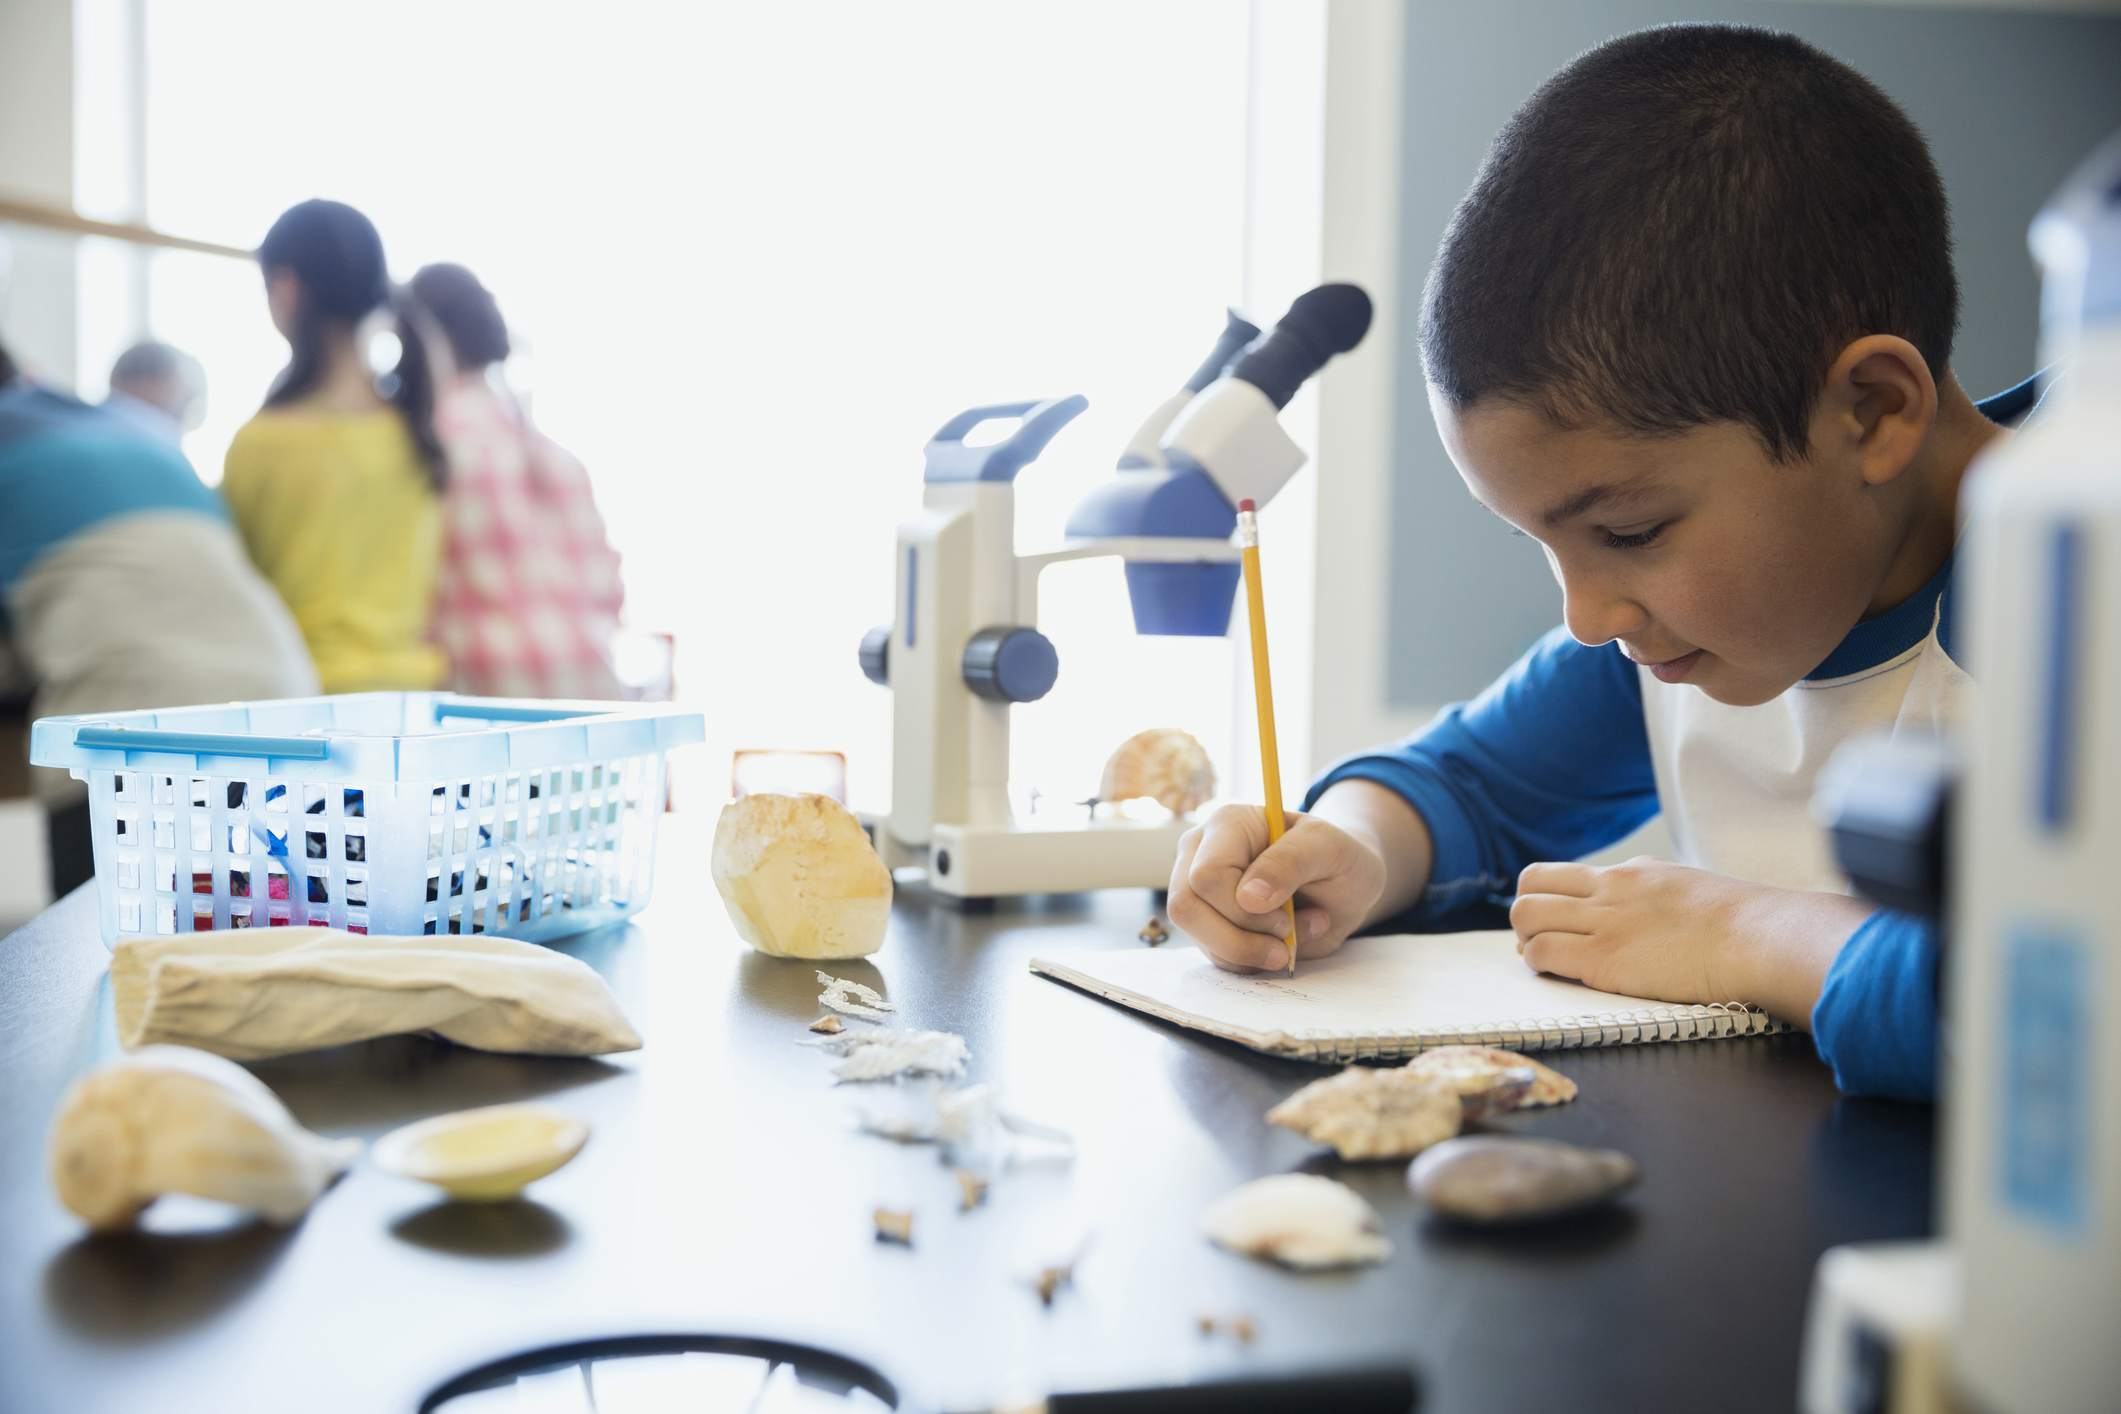 Schoolboy taking notes at microscope science laboratory classroom